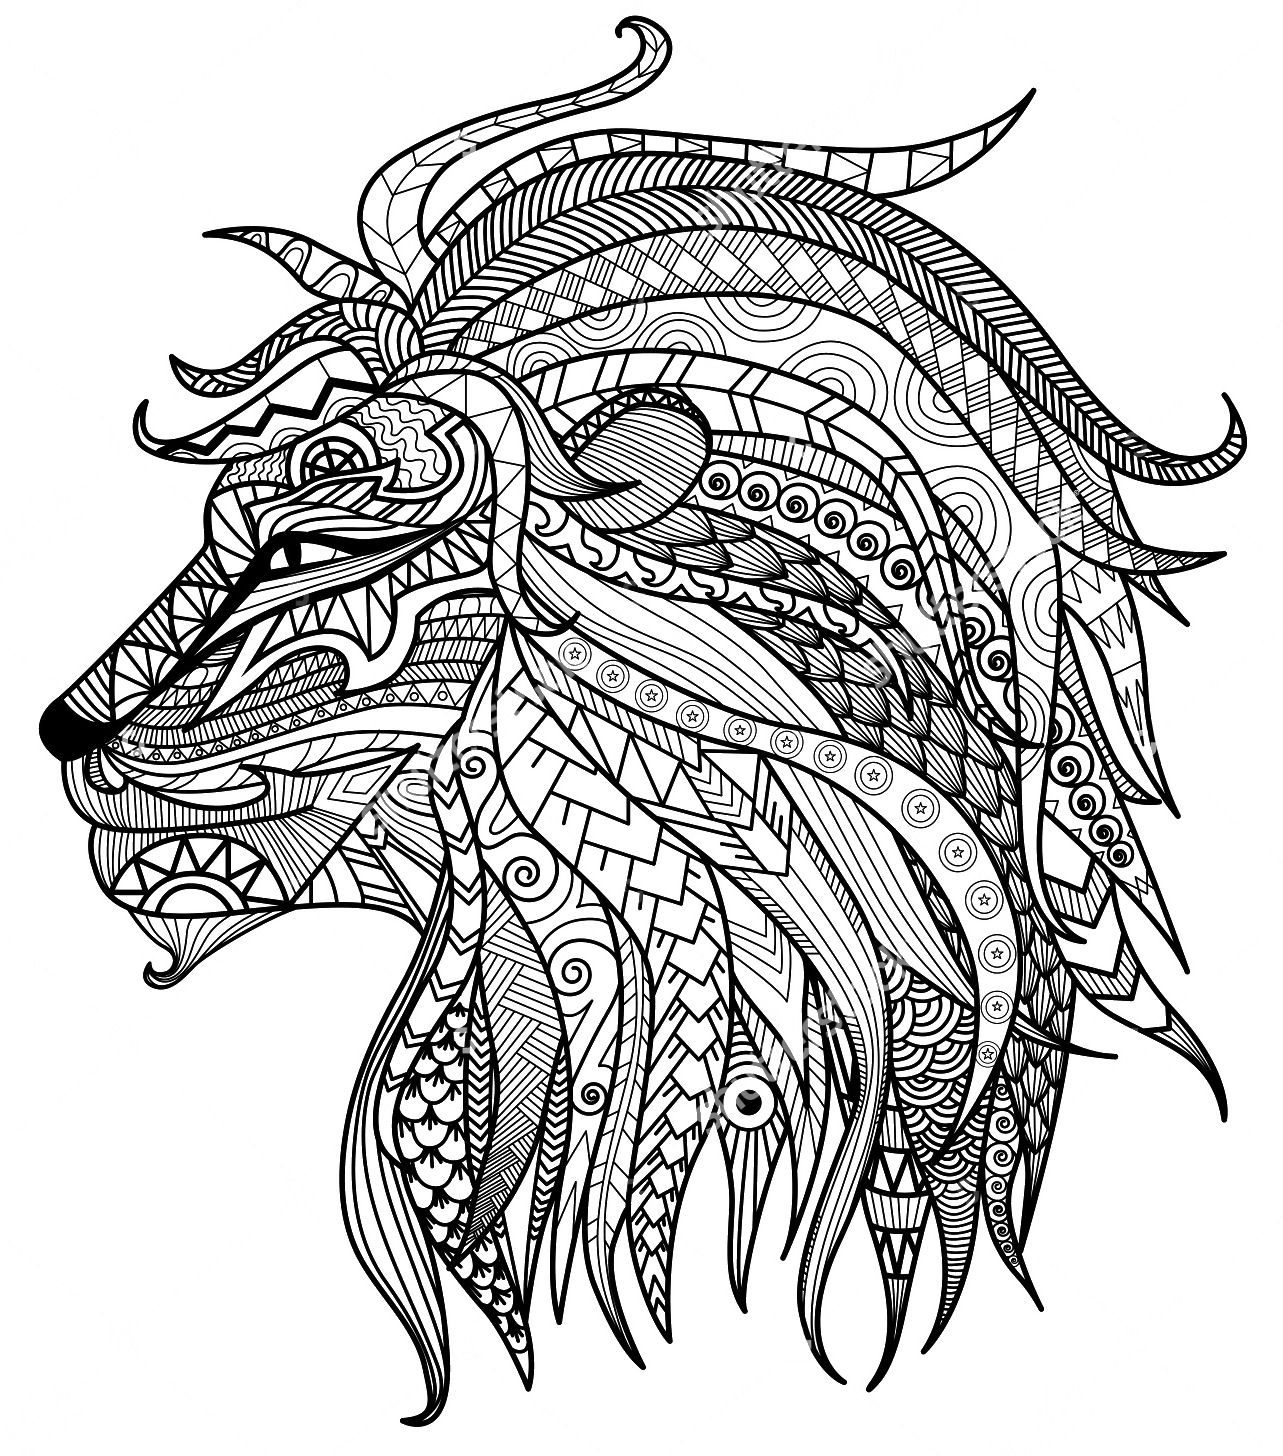 Coloring Pages For Adults: Adult Coloring Pages Lion Head